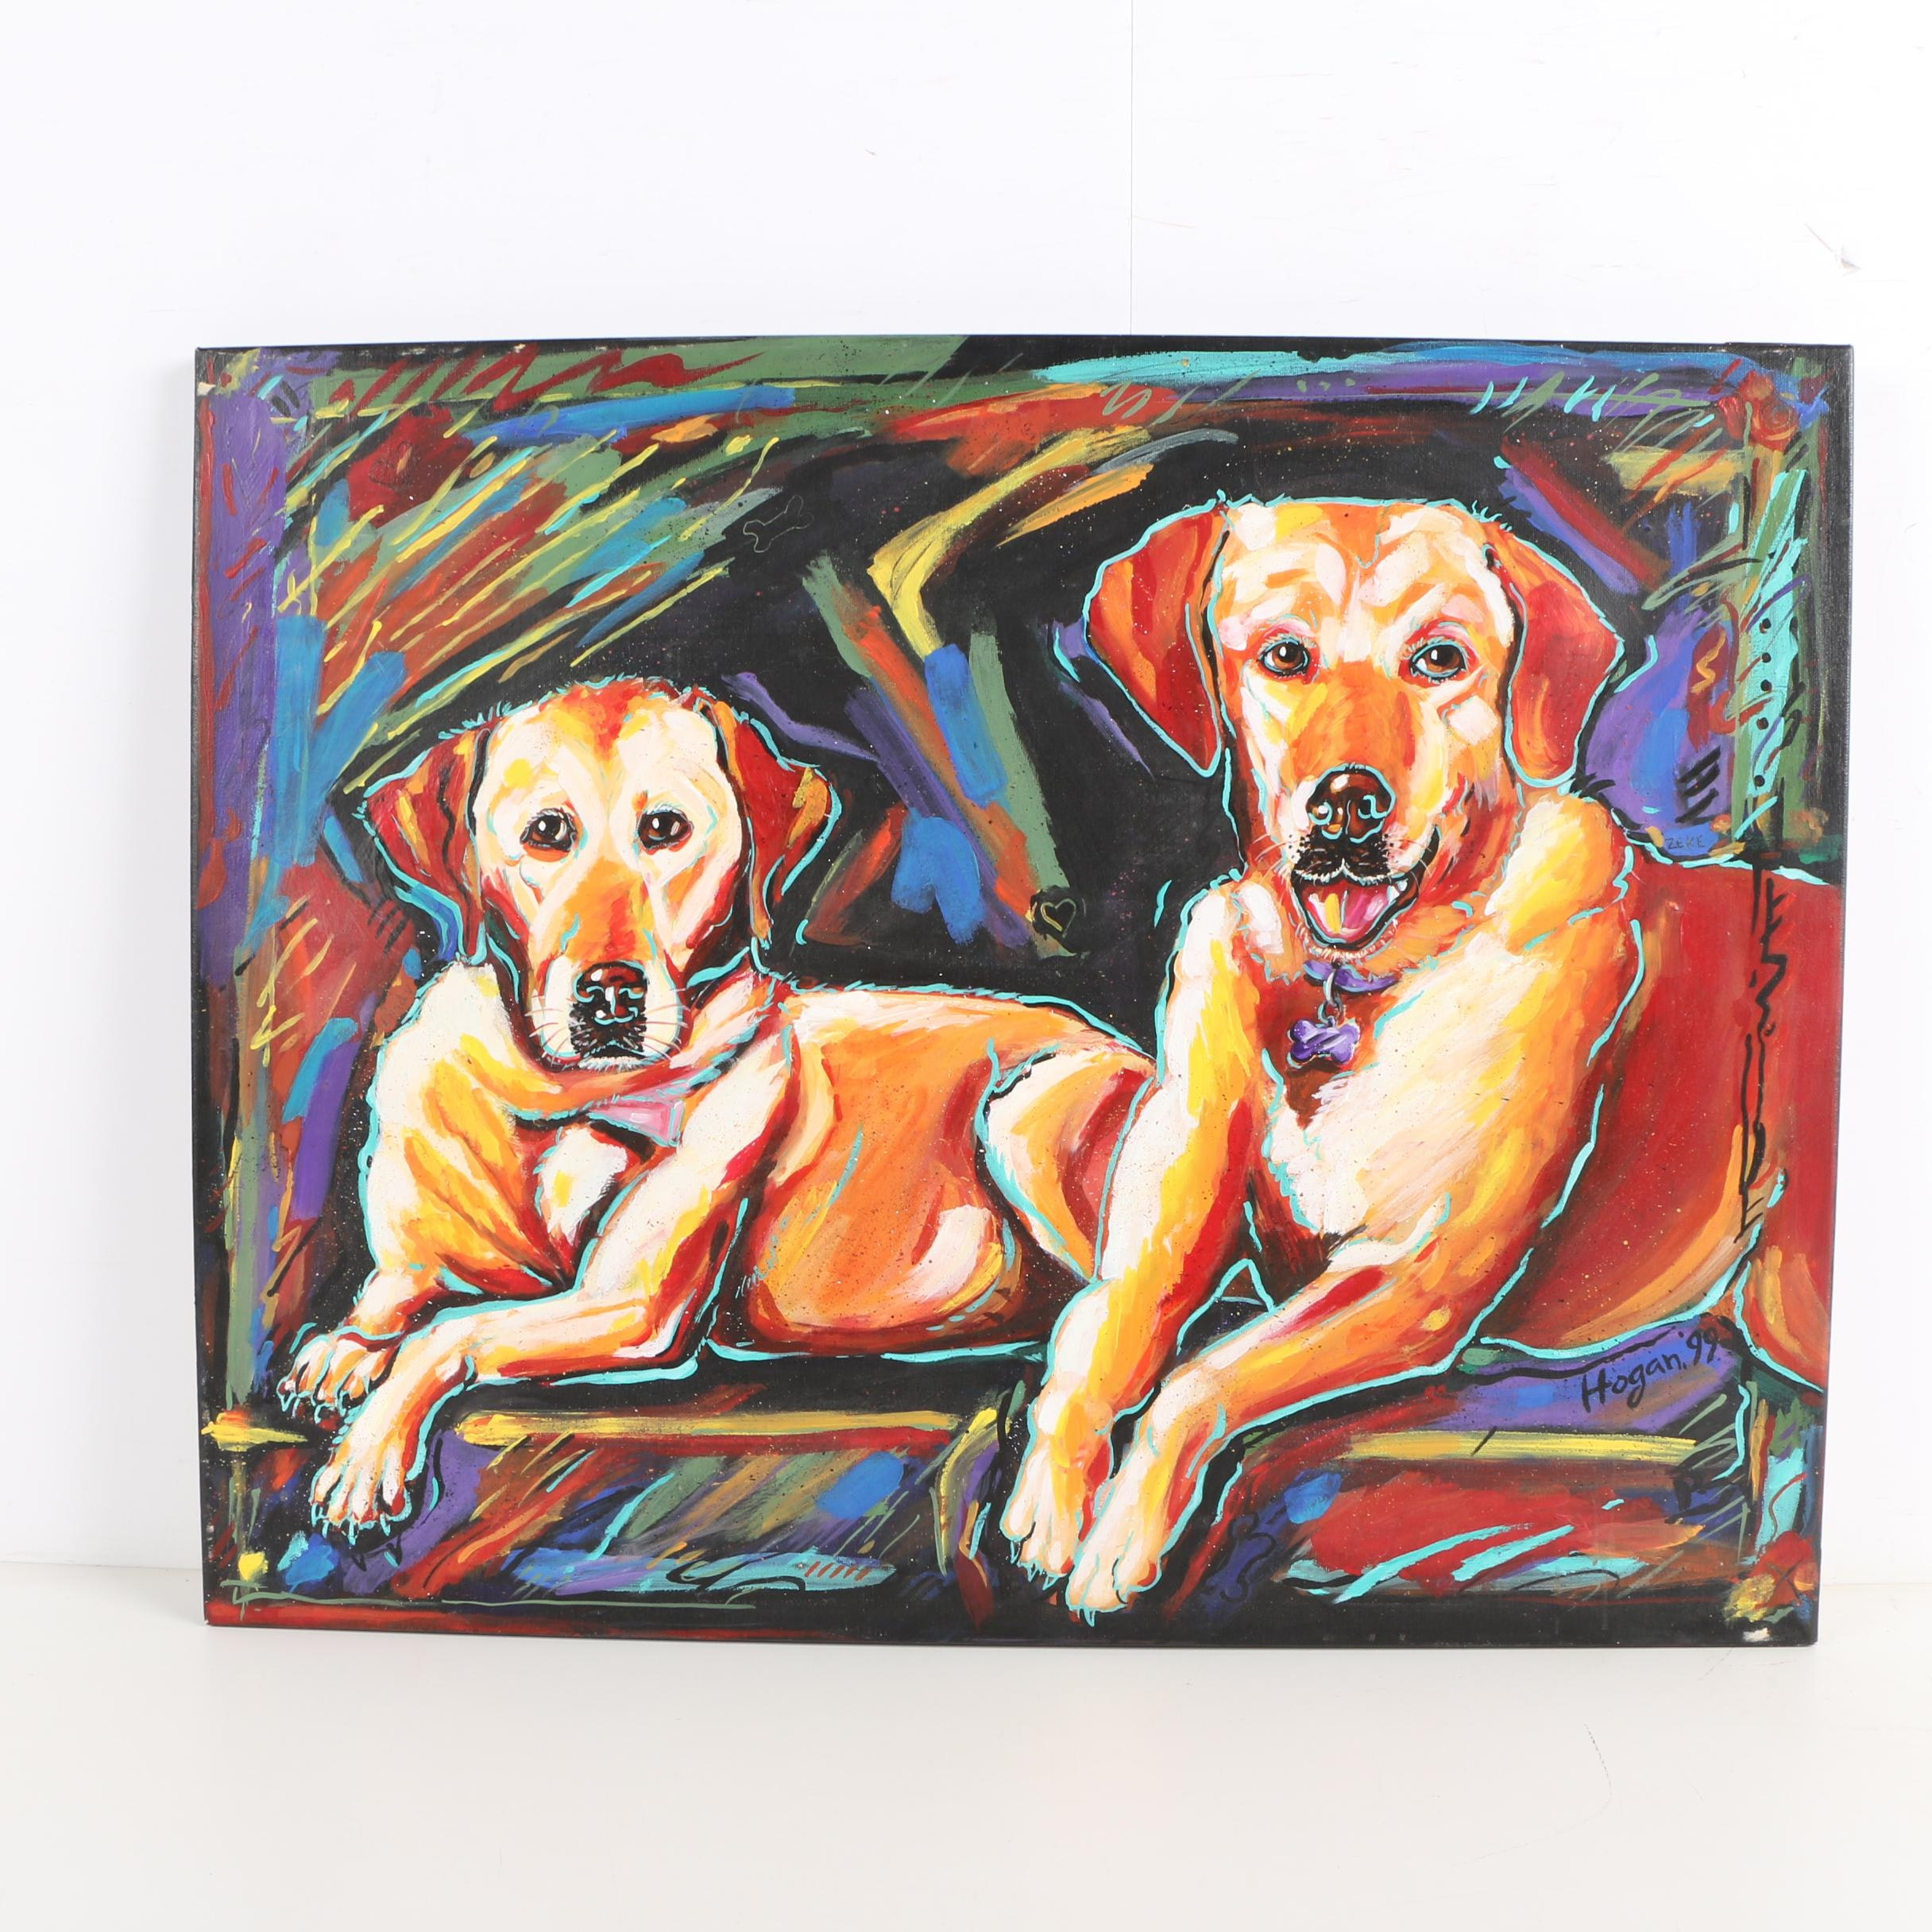 "1999 Barbara Hogan Acrylic Painting ""Zeke & Lindy"""